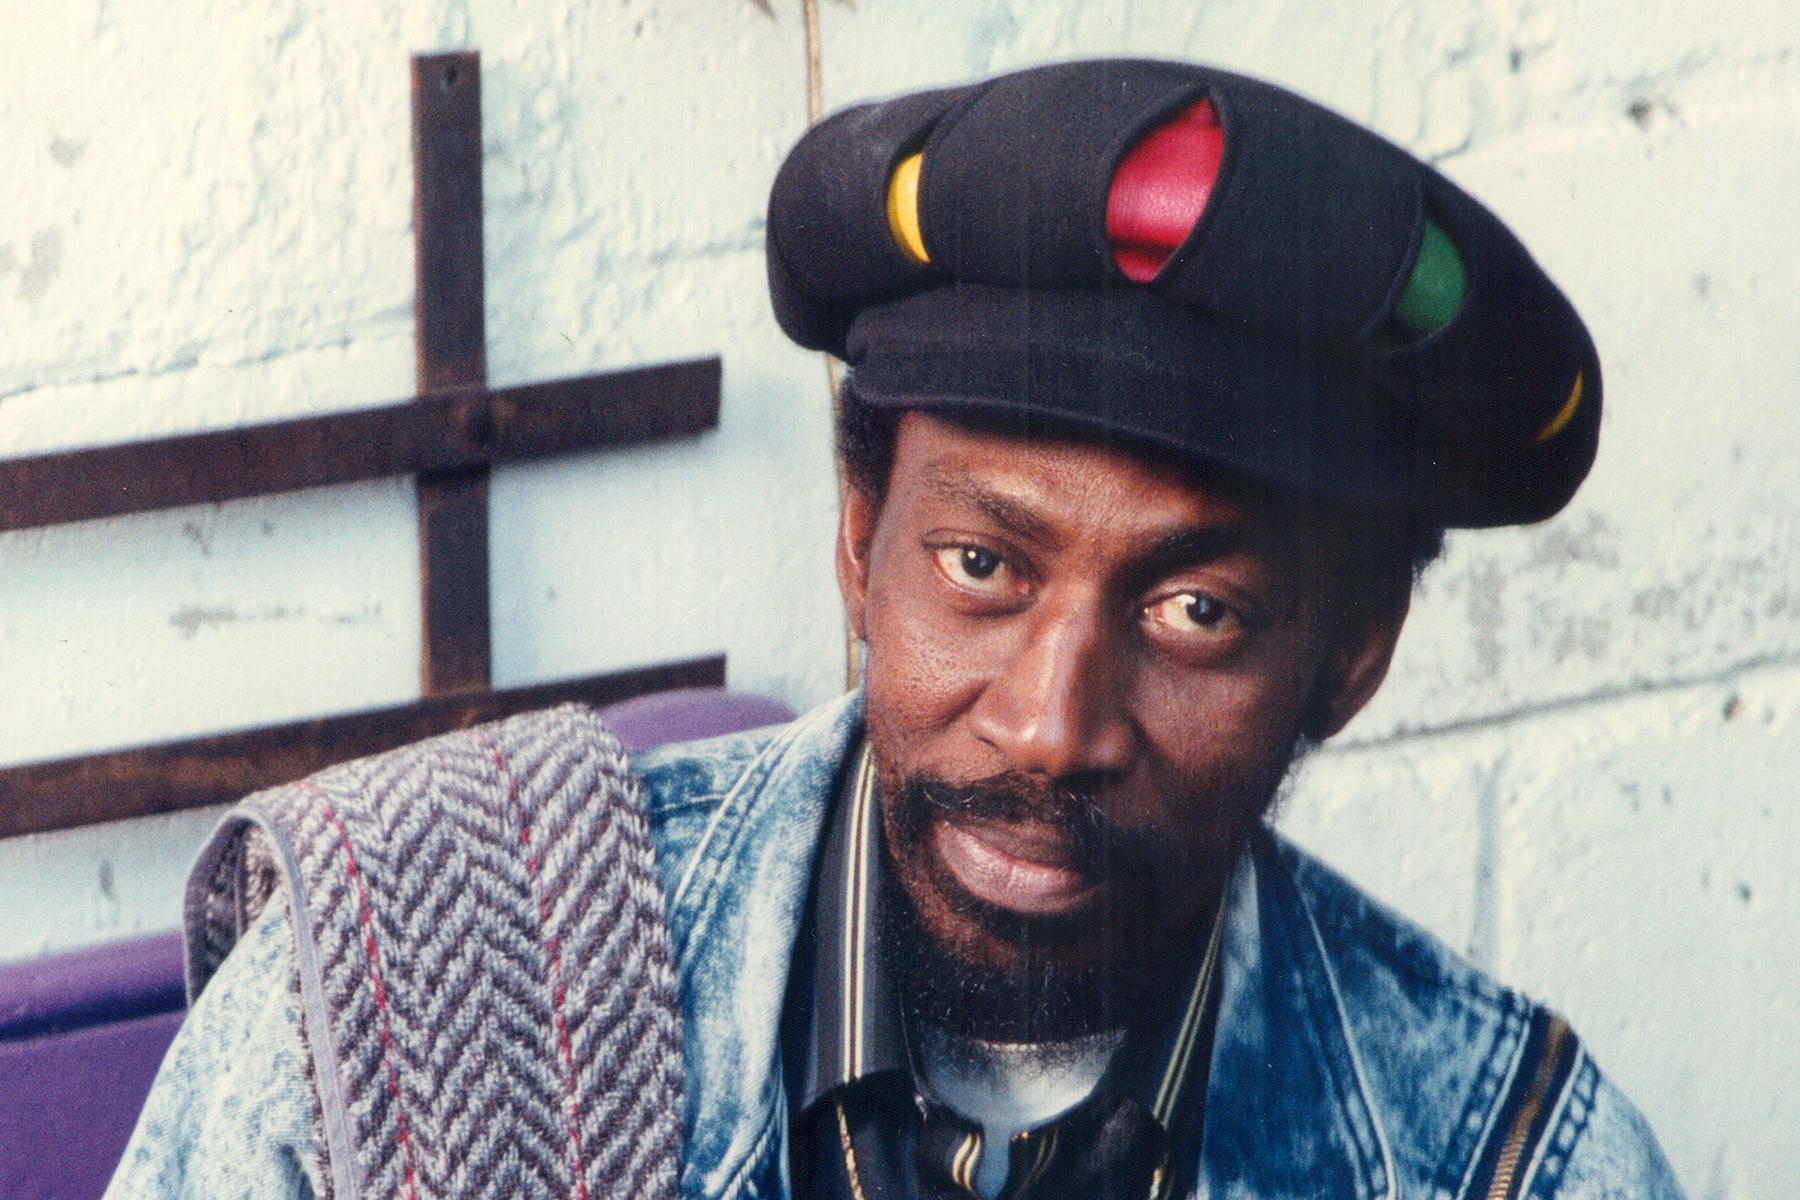 Reggae Icon Bunny Wailer -- Founding Member of the Wailers -- Has Died at 73